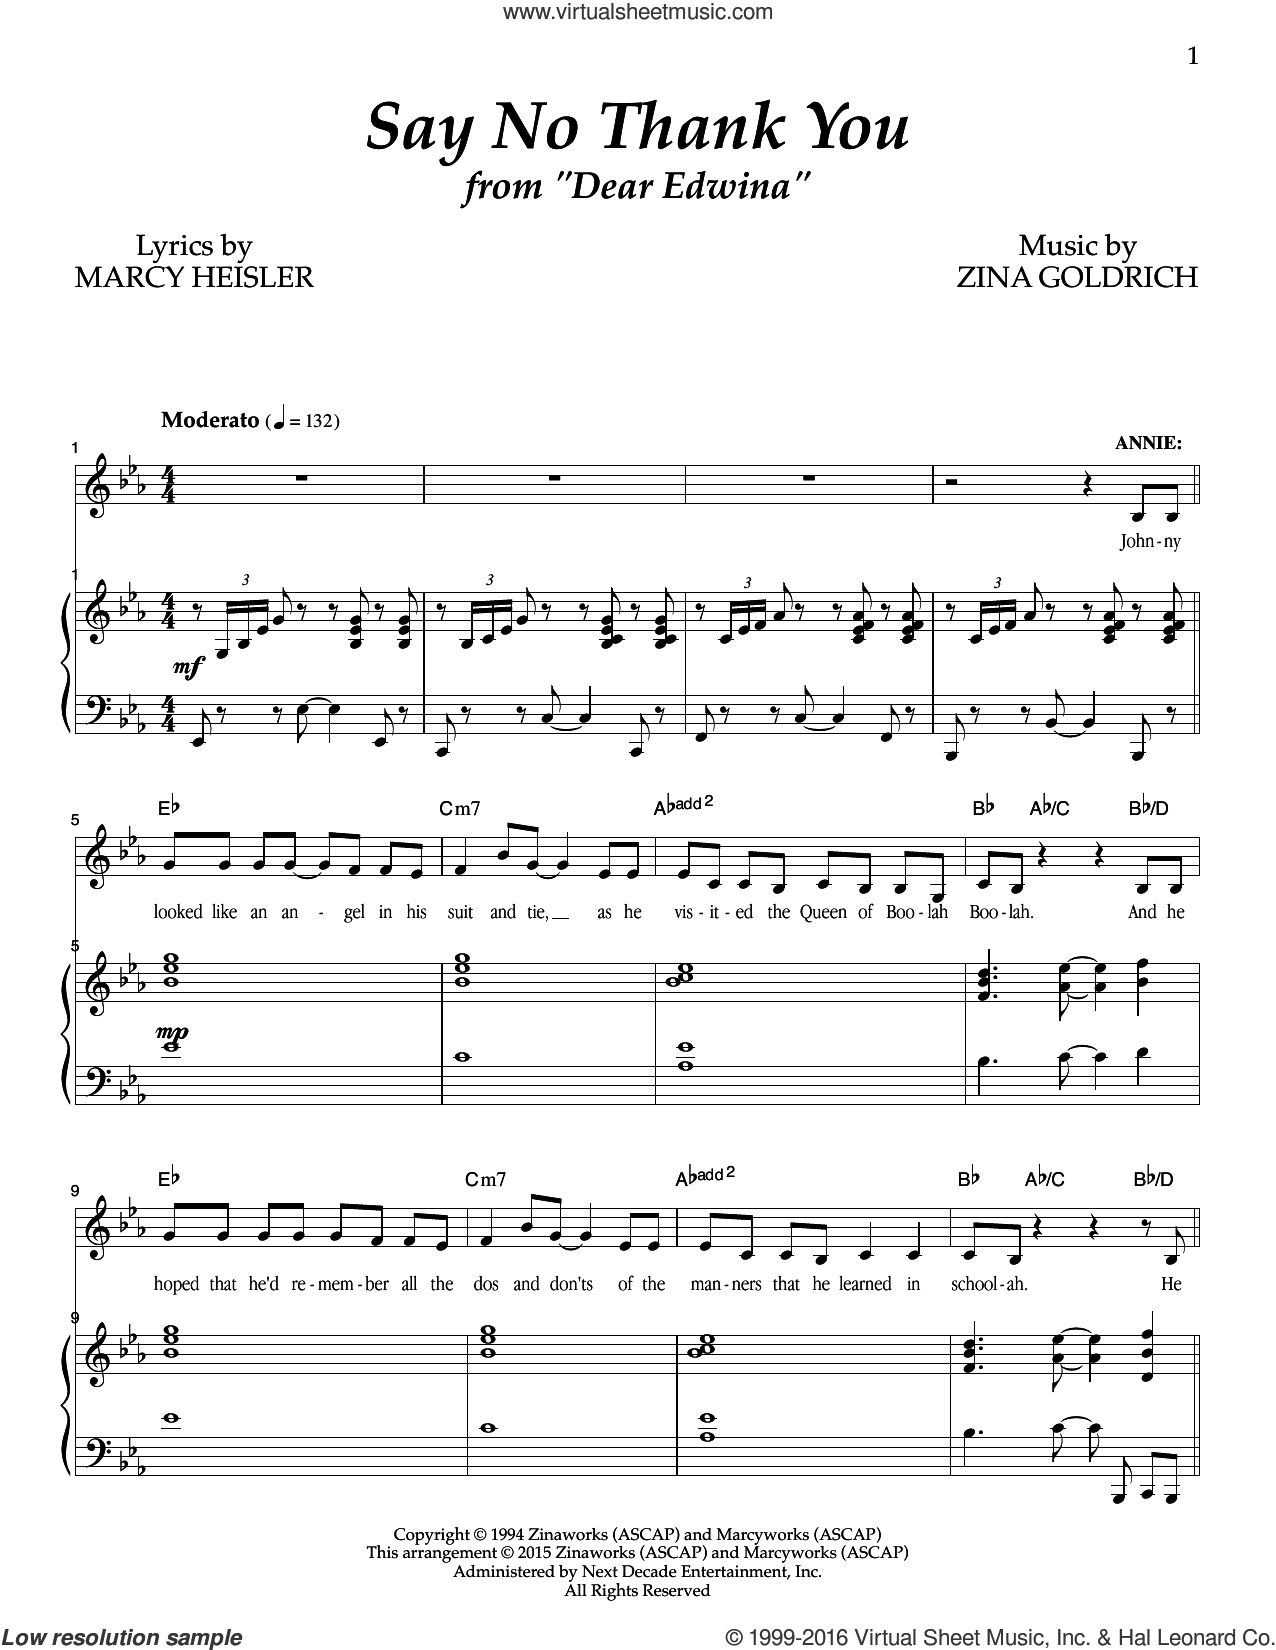 Say No Thank You sheet music for voice and piano by Marcy Heisler, Goldrich & Heisler and Zina Goldrich. Score Image Preview.